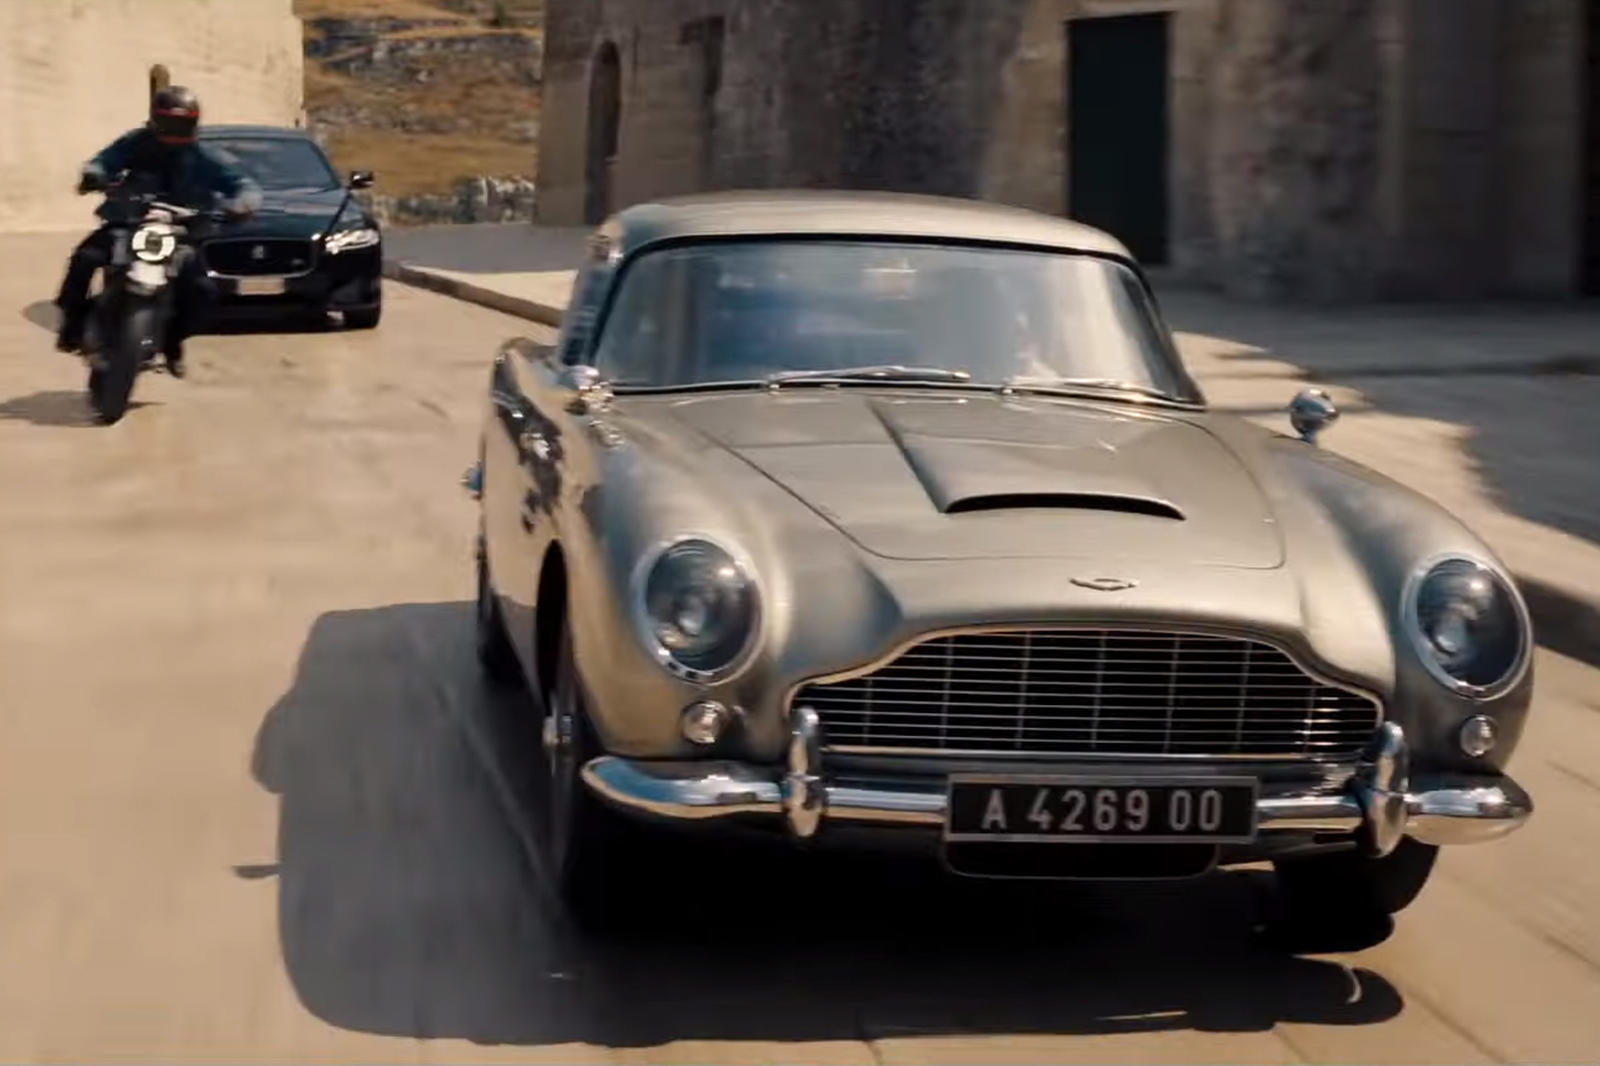 Aston Martin Db5 Takes A Beating In James Bond No Time To Die Trailer Carbuzz